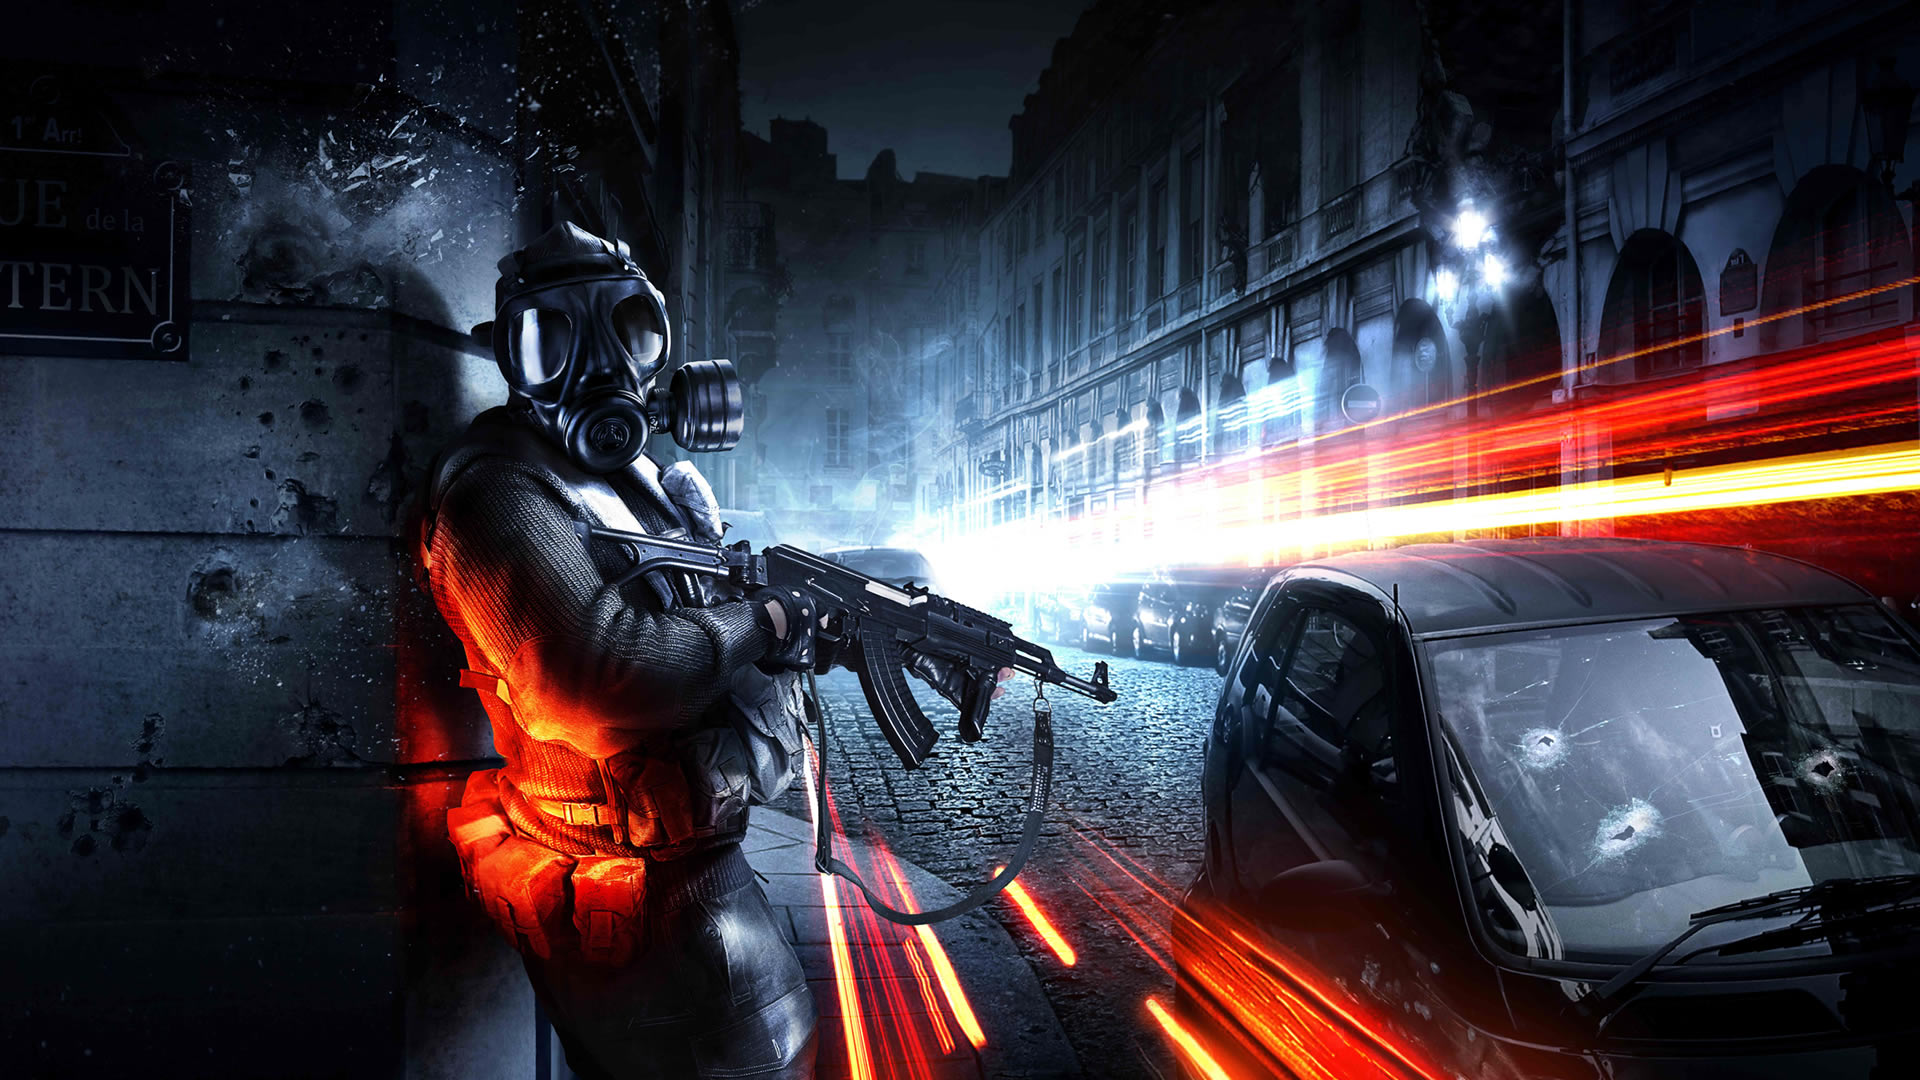 battlefield 4 pc wallpaper